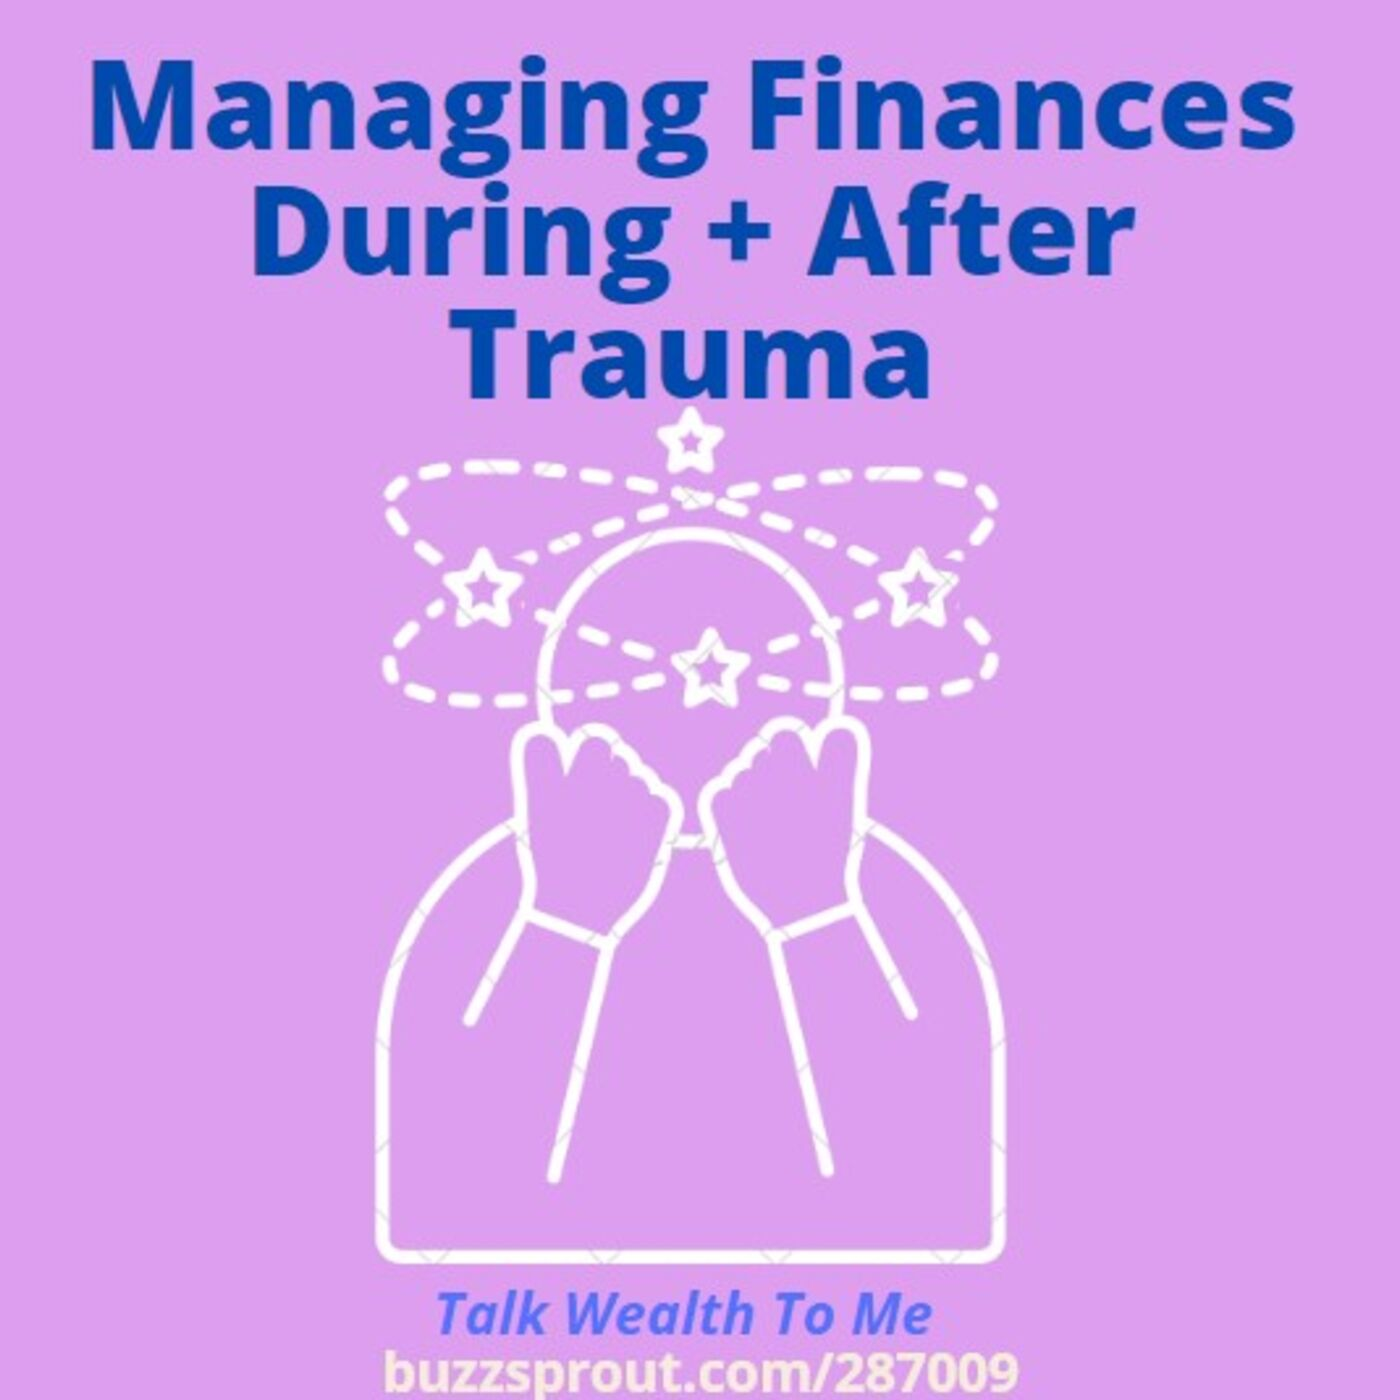 Managing Your Finances During and After Trauma with Kylie Travers